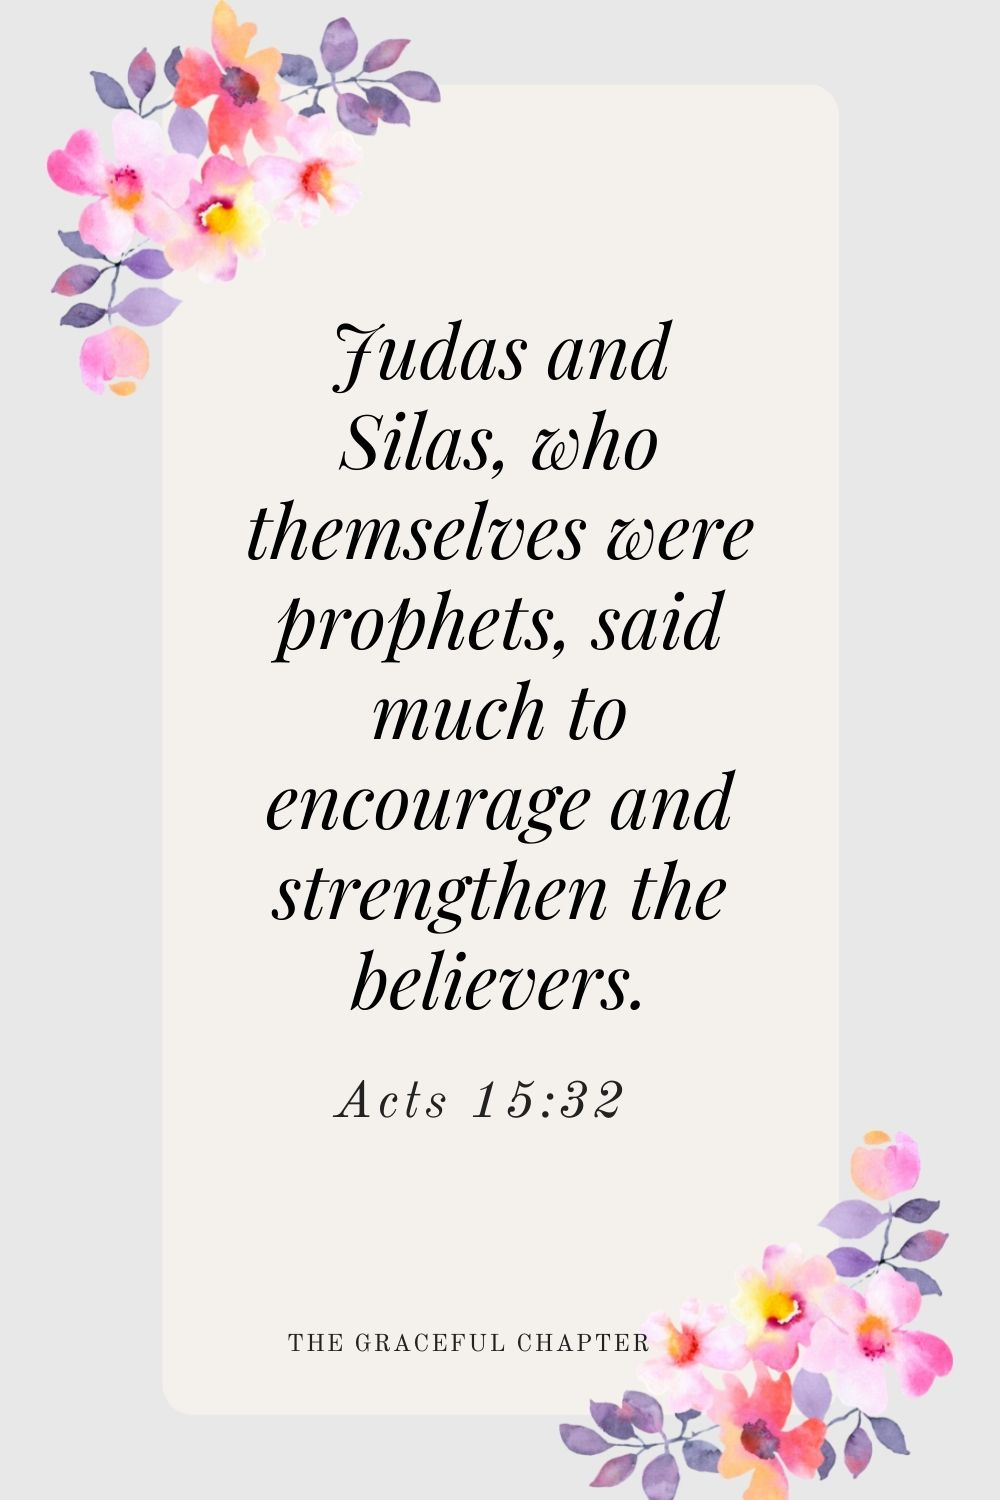 Judas and Silas, who themselves were prophets, said much to encourage and strengthen the believers. Acts 15:32